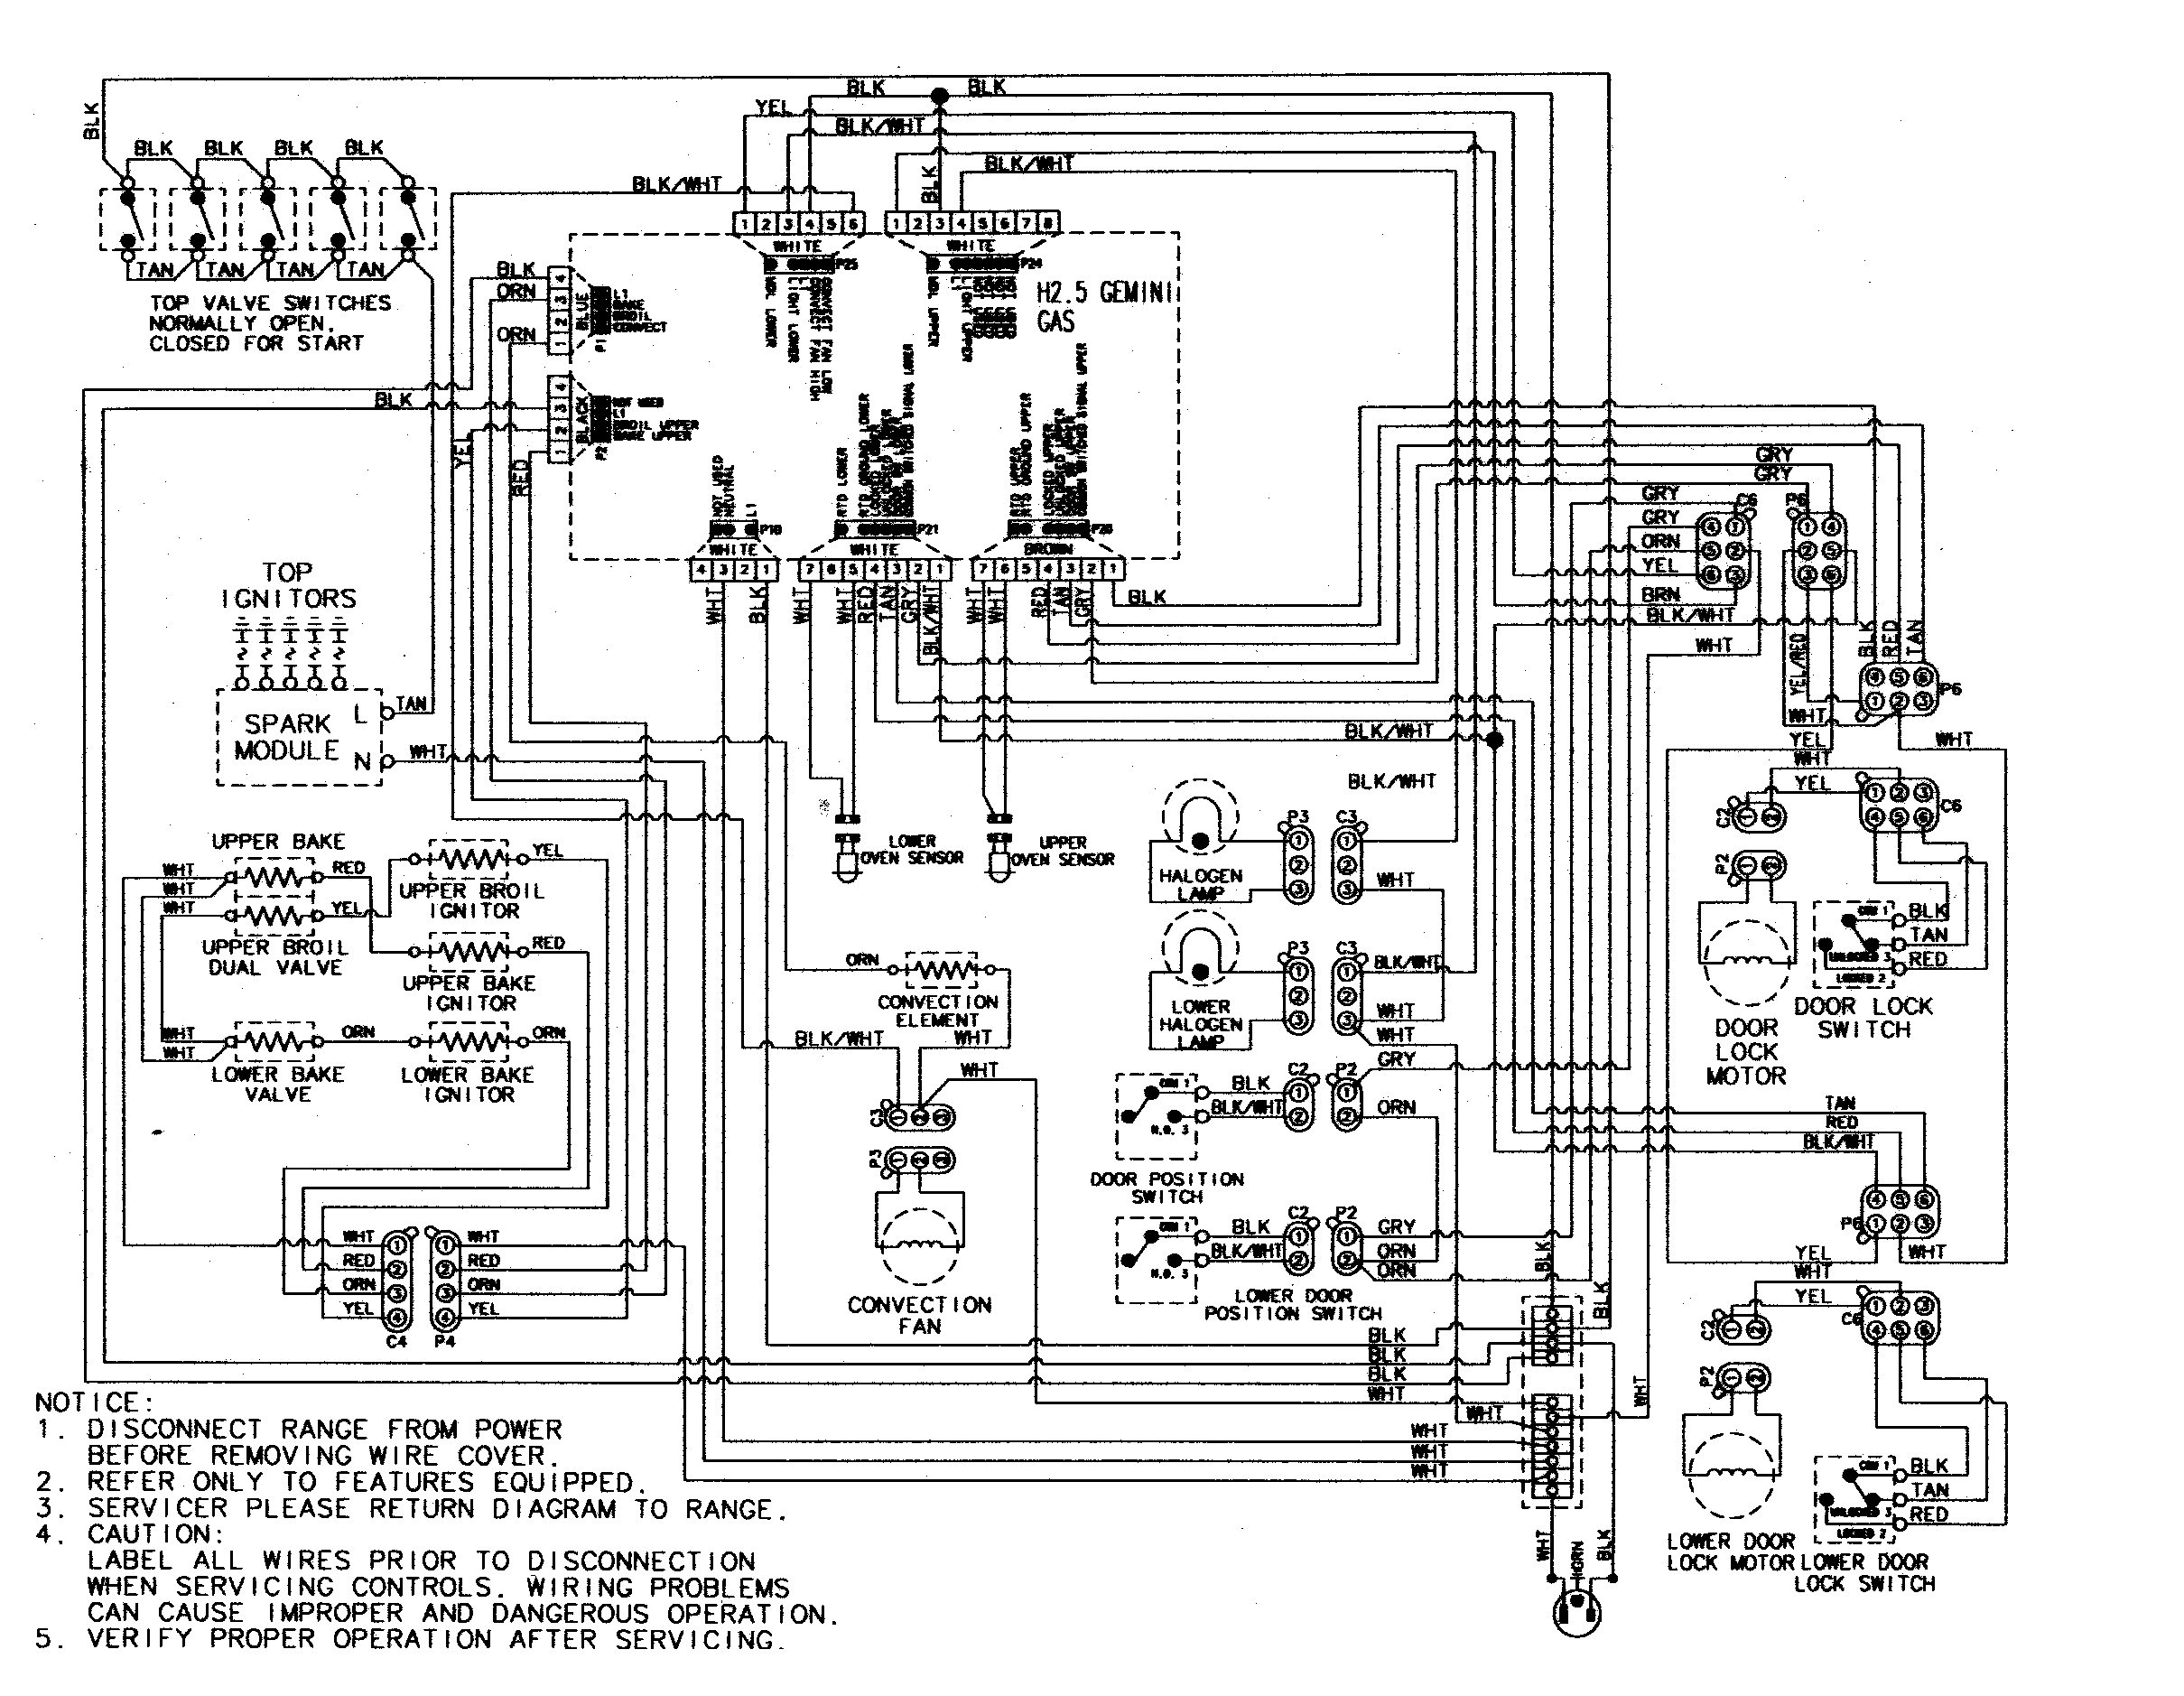 Maytag Parts Diagram Electrical Wiring For Mde7400ayw Information From Mgr6875adb Gemini 30 Quot Double Oven Freestanding Gas Washing Machine A208